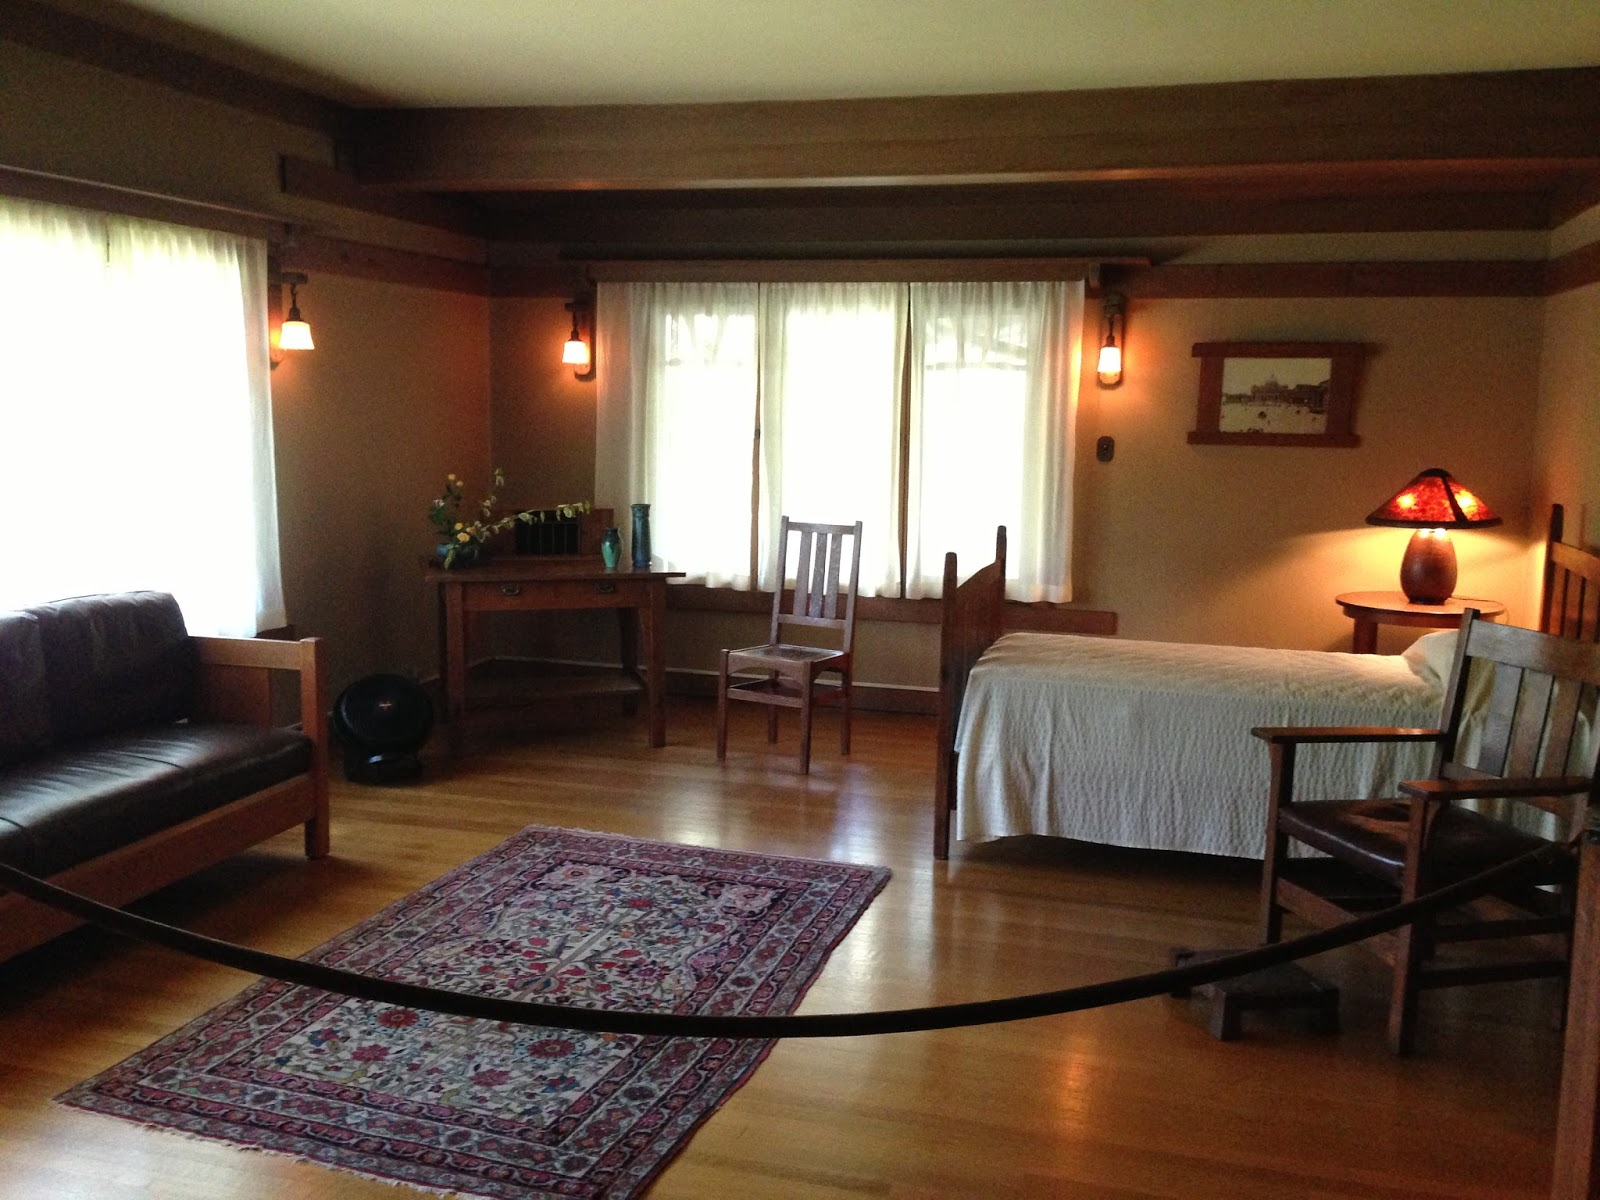 Taking The Gamble House Upstairs Downstairs Tour